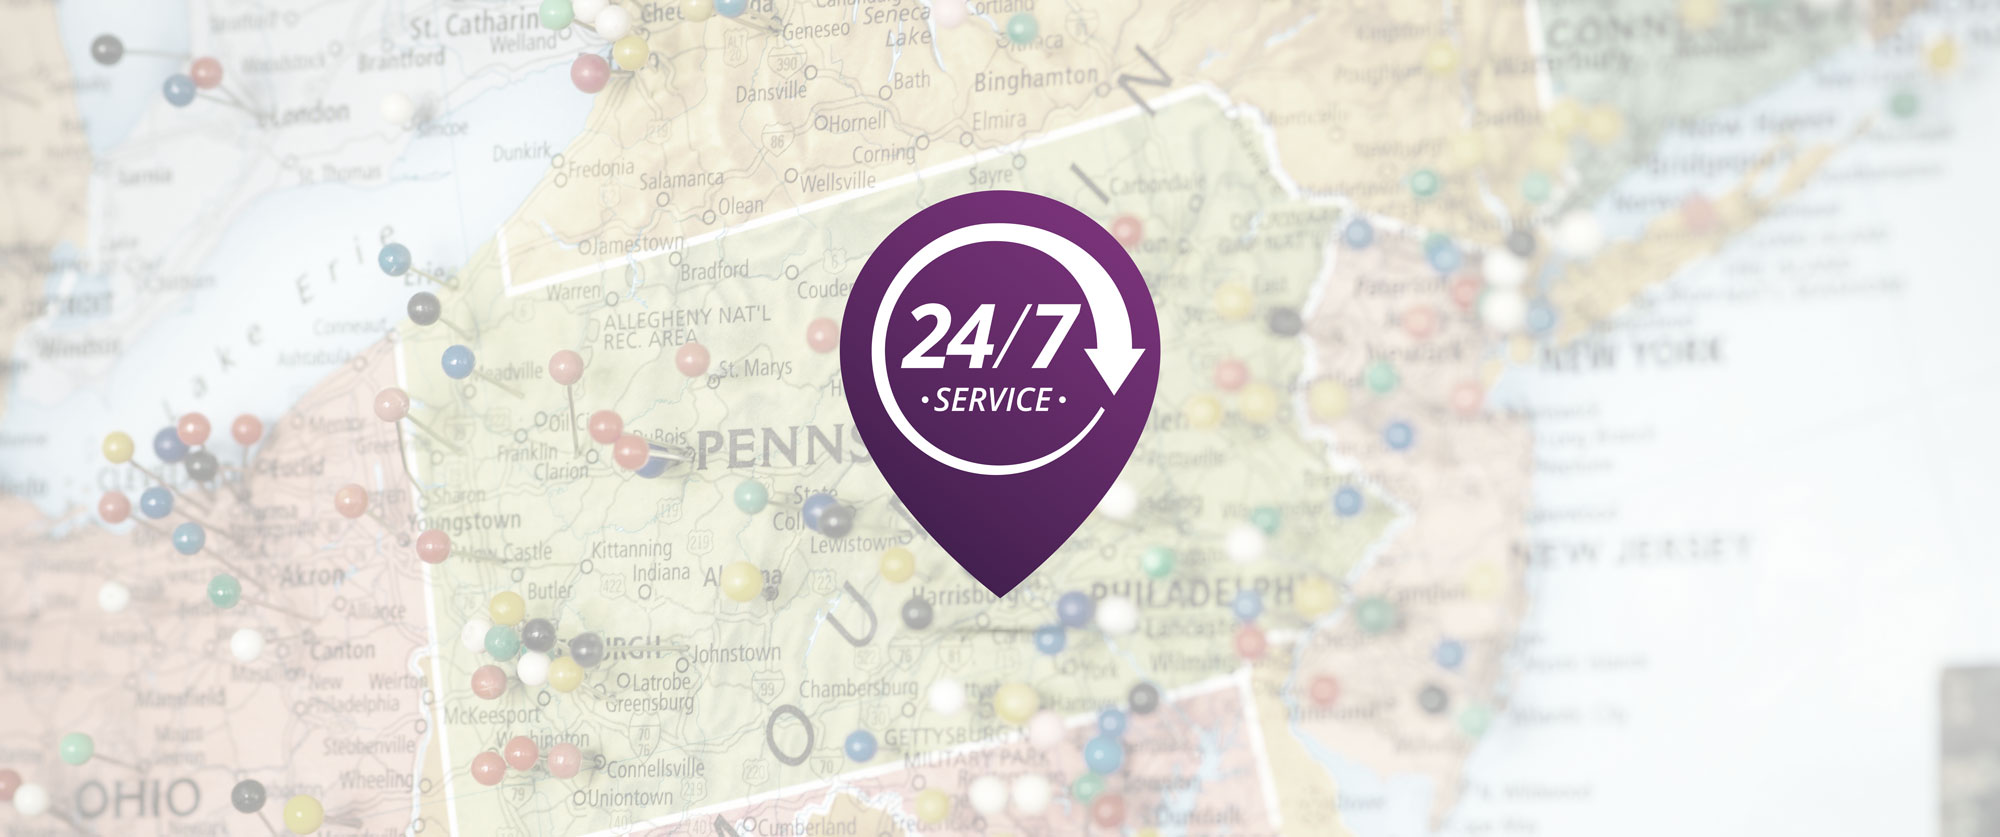 24/7 Service Map